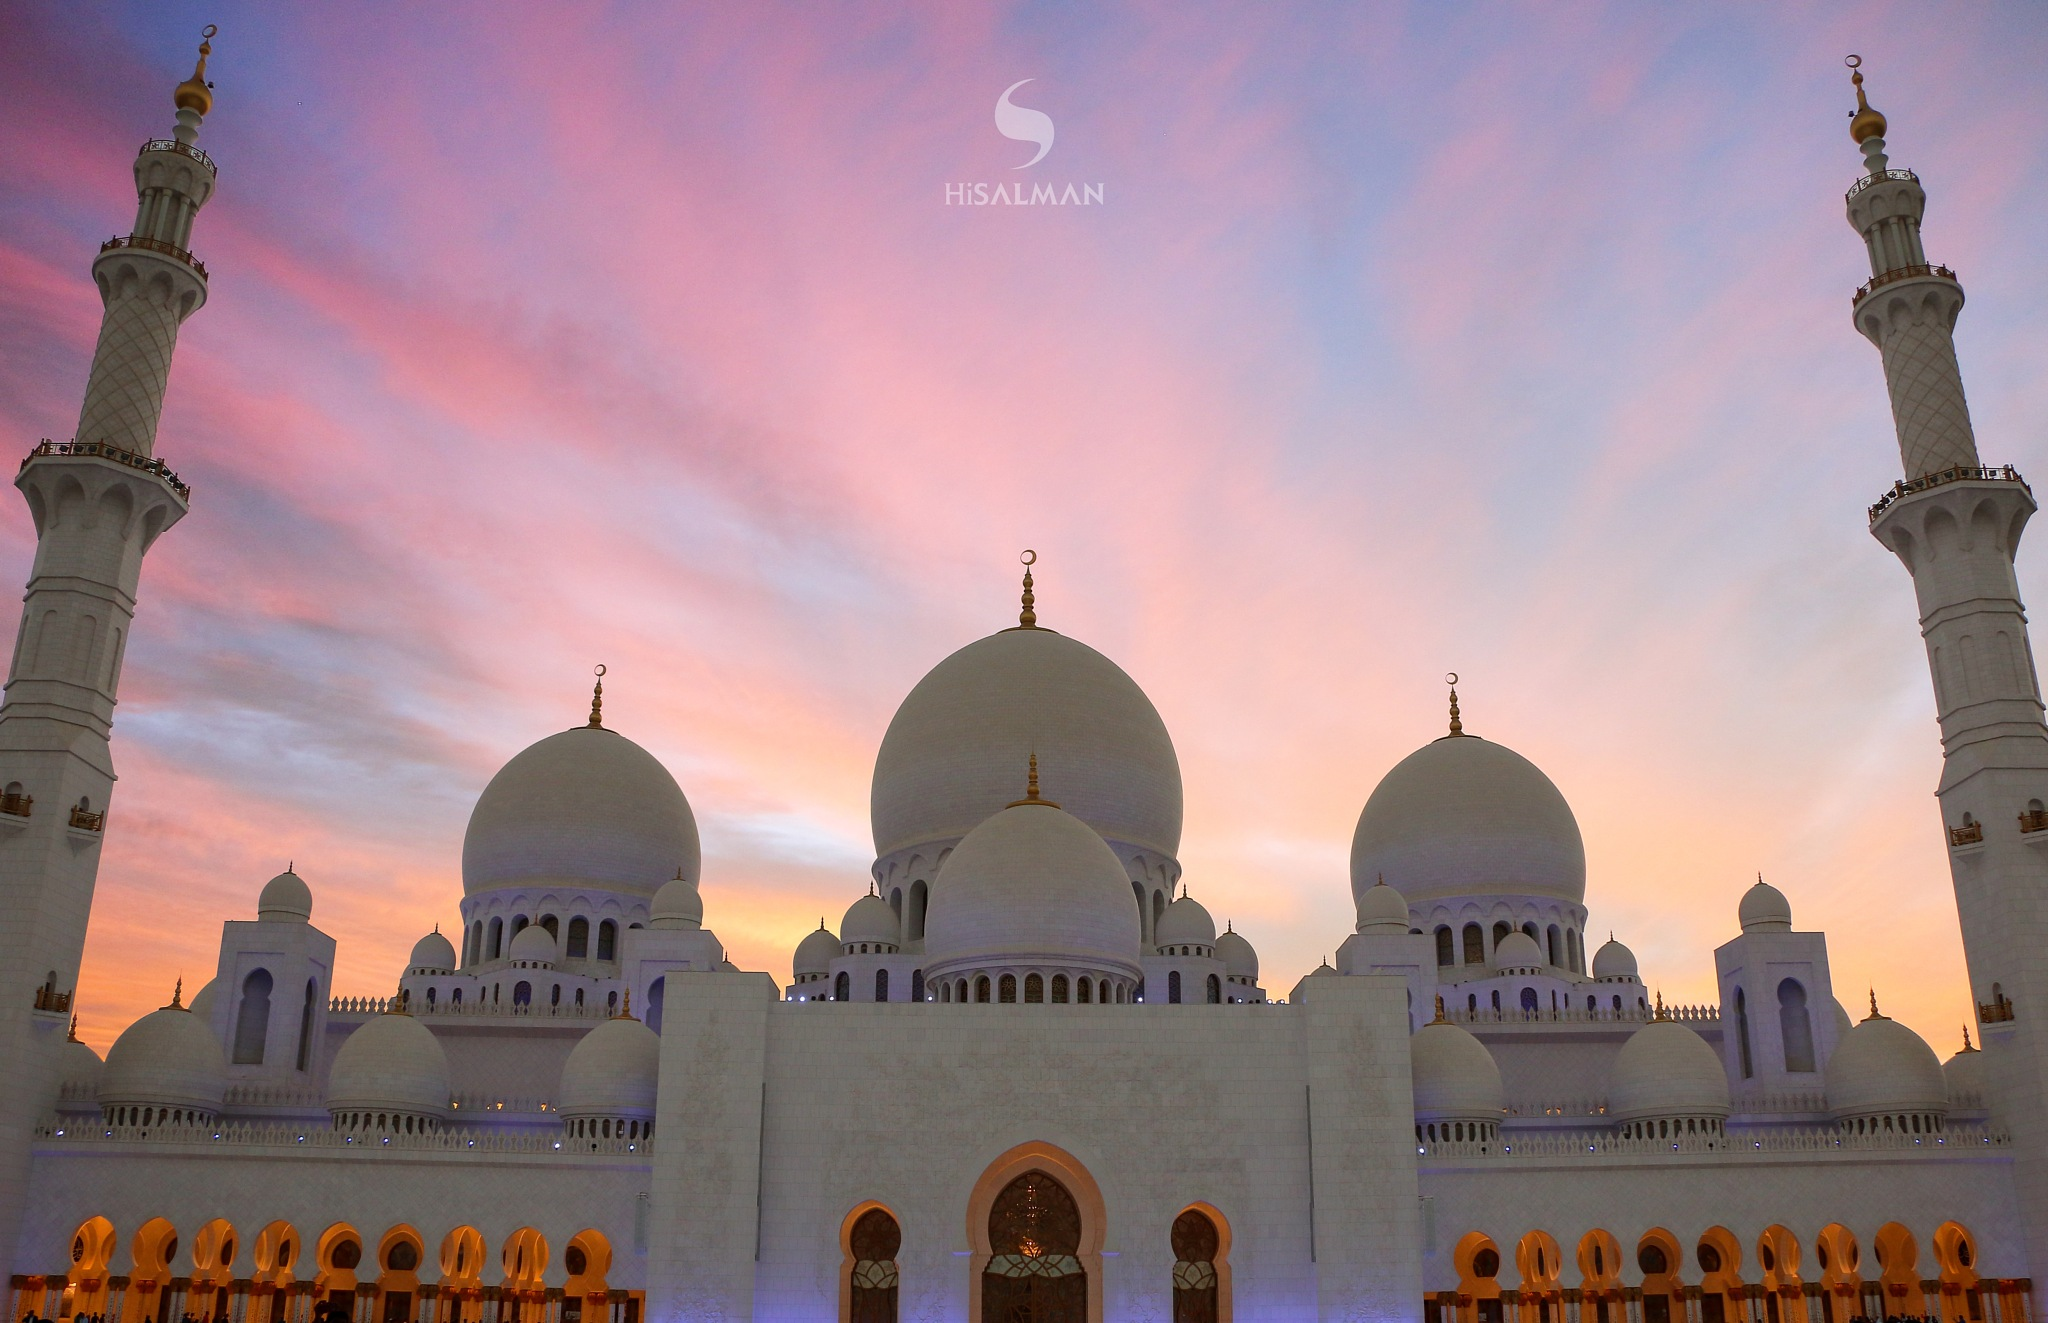 Sheikh Zayed Grand Mosque by SALMAN AHMED